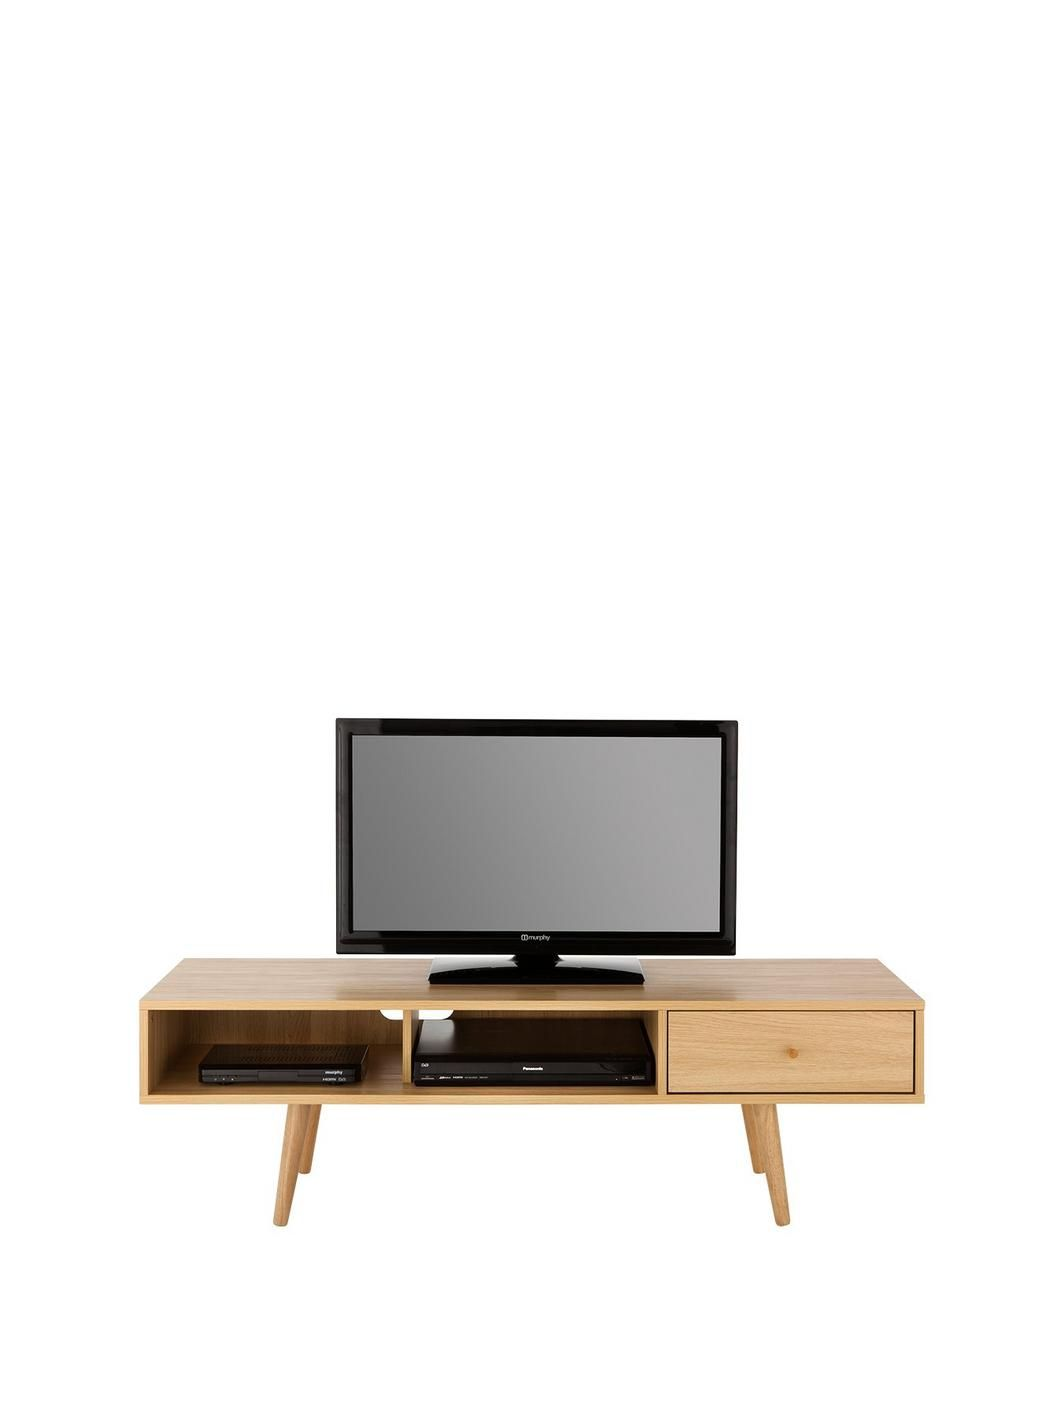 Retro Tv Cabinet Ideal Home Monty Retro Tv Unit Fits Up To 65 Inch Tv Oak Effect